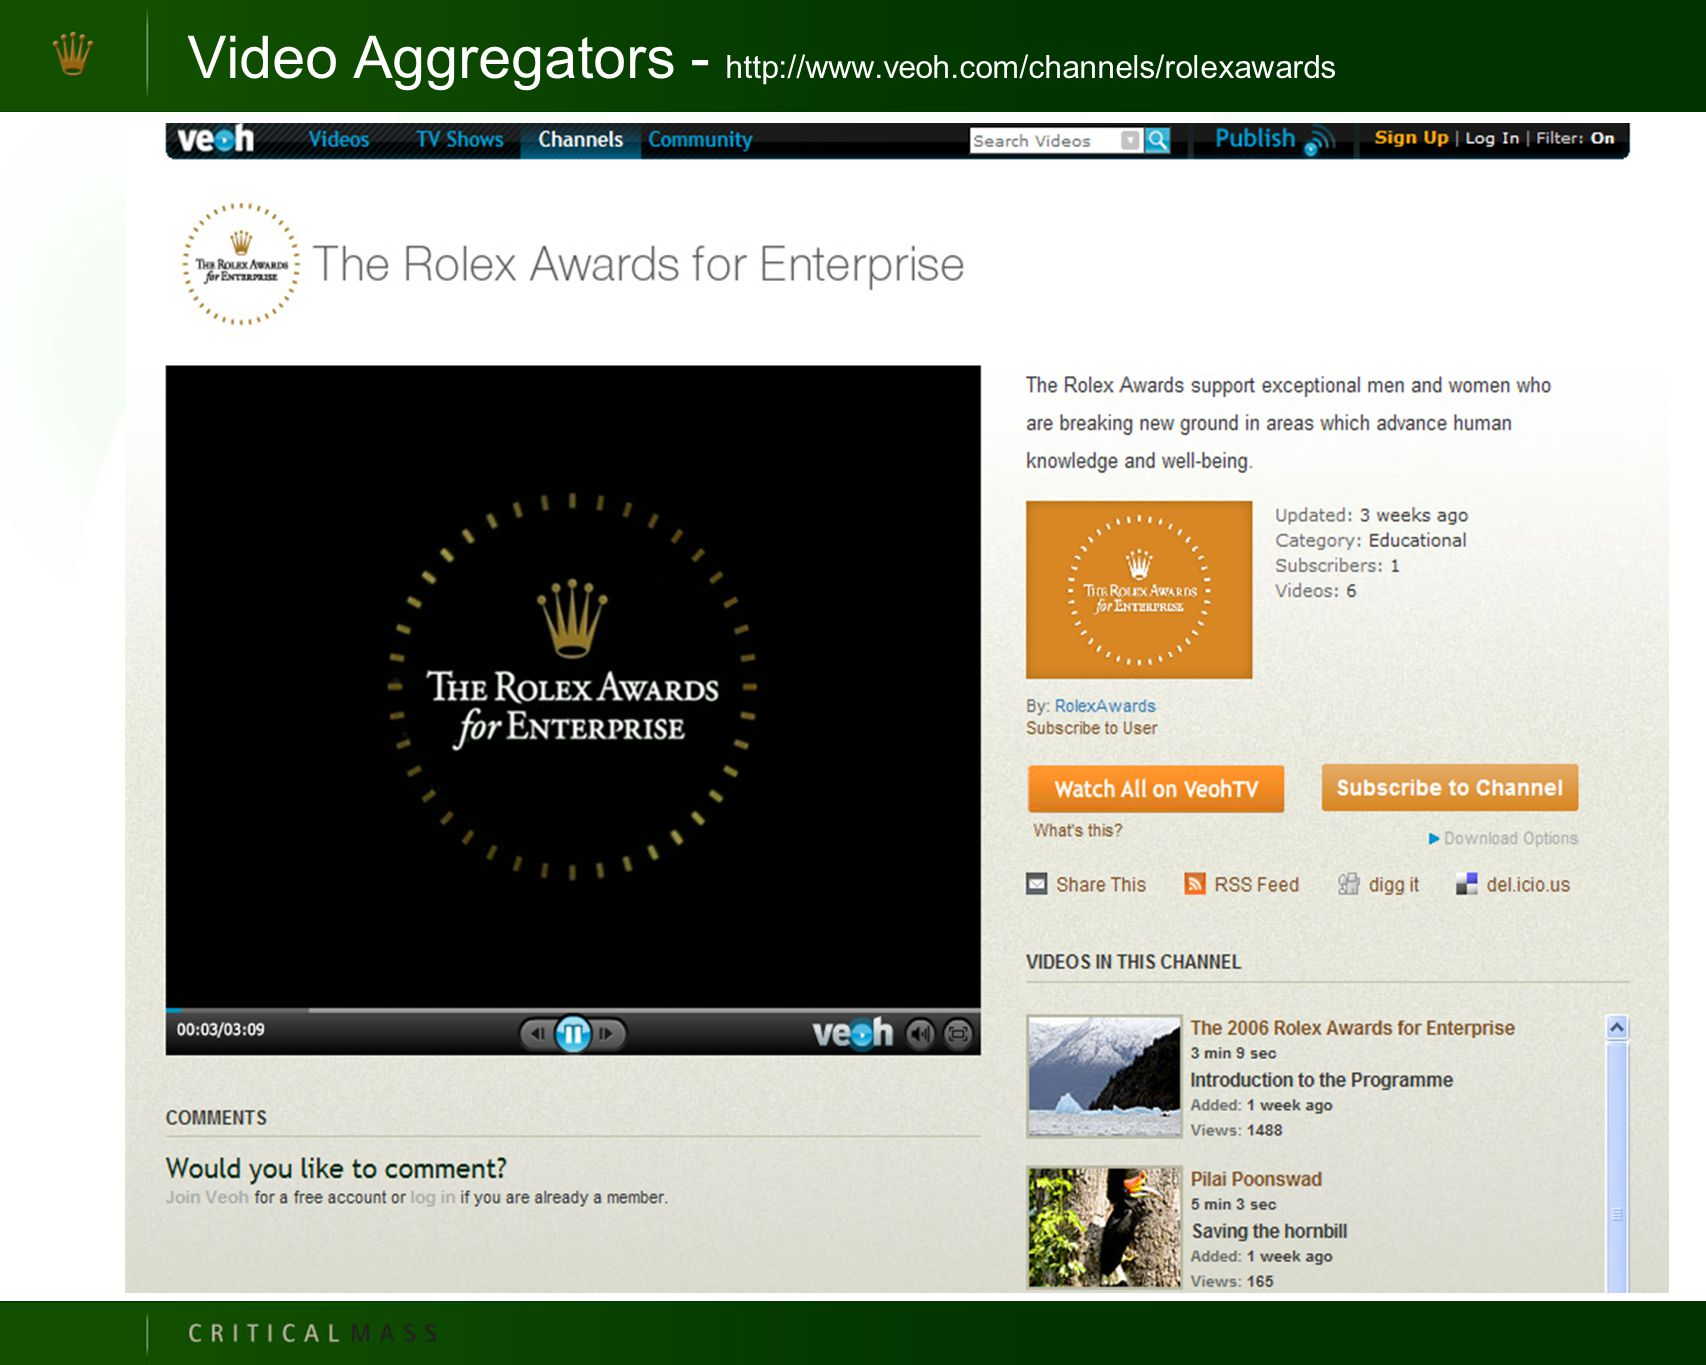 Video Aggregators - http://www.veoh.com/channels/rolexawards